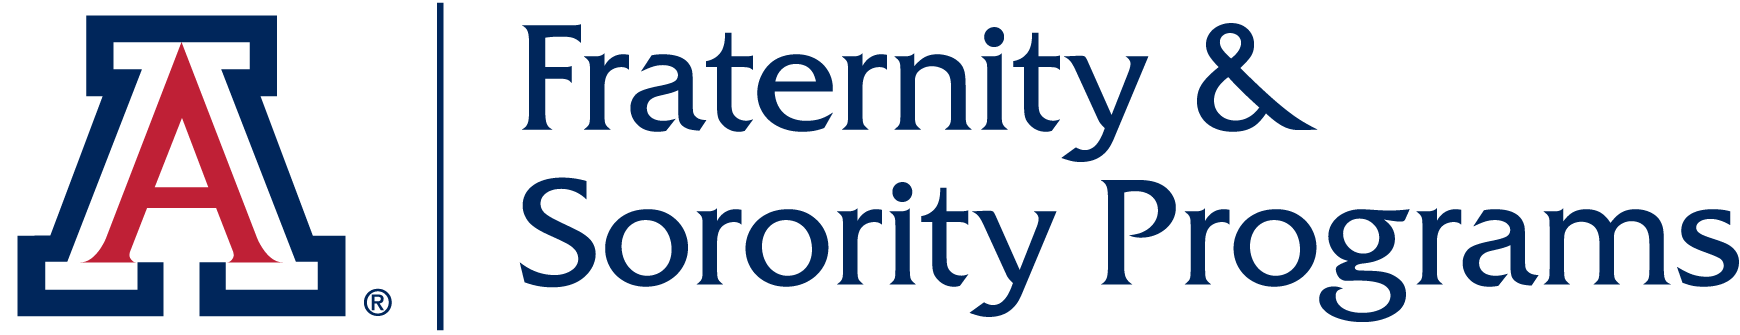 Fraternity Fraternity Sorority Programs